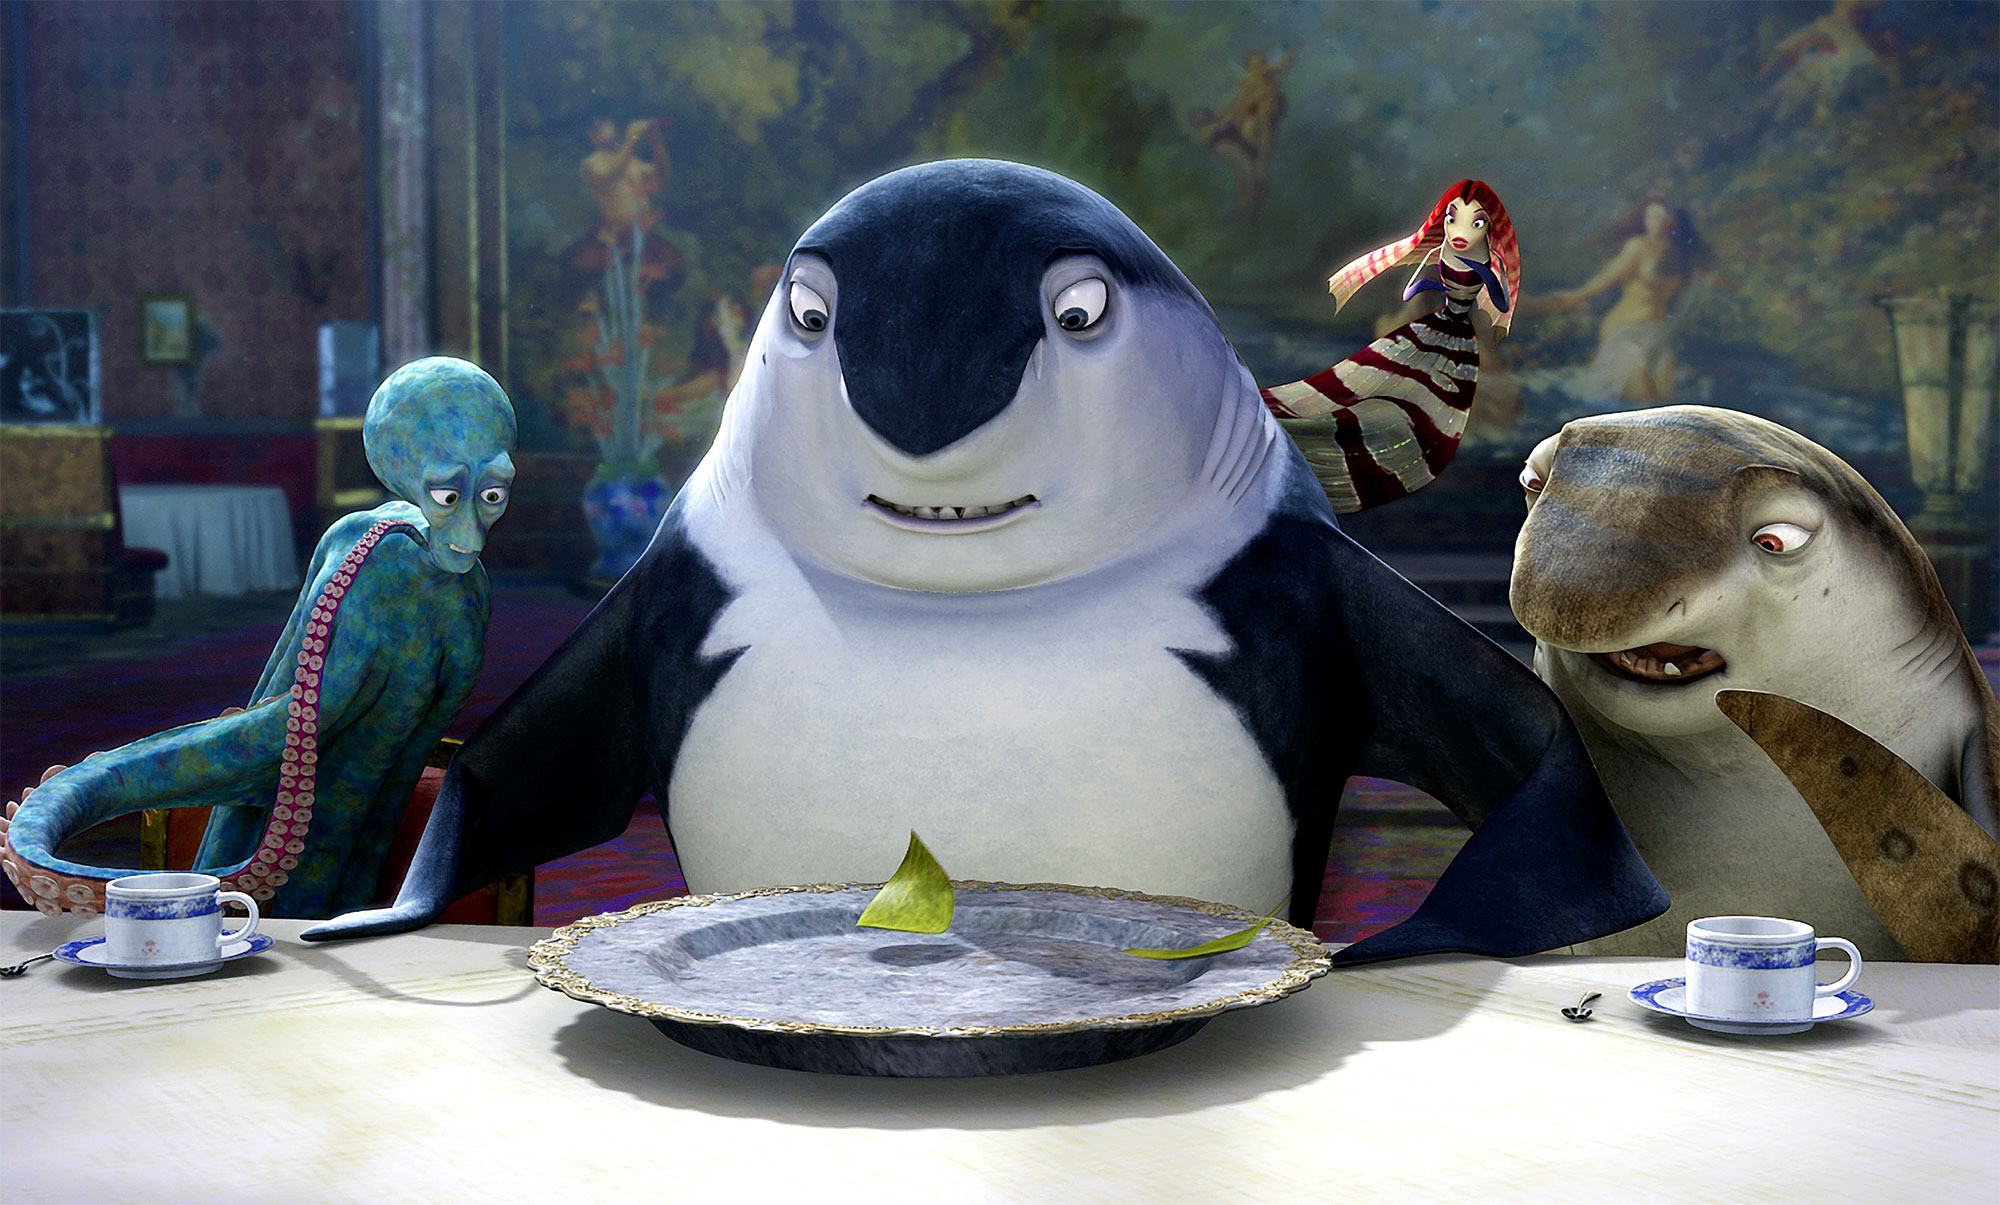 SHARK TALE, Luca, Don Lino, Lola, Don Feinberg, 2004, (c) DreamWorks/courtesy Everett Collection